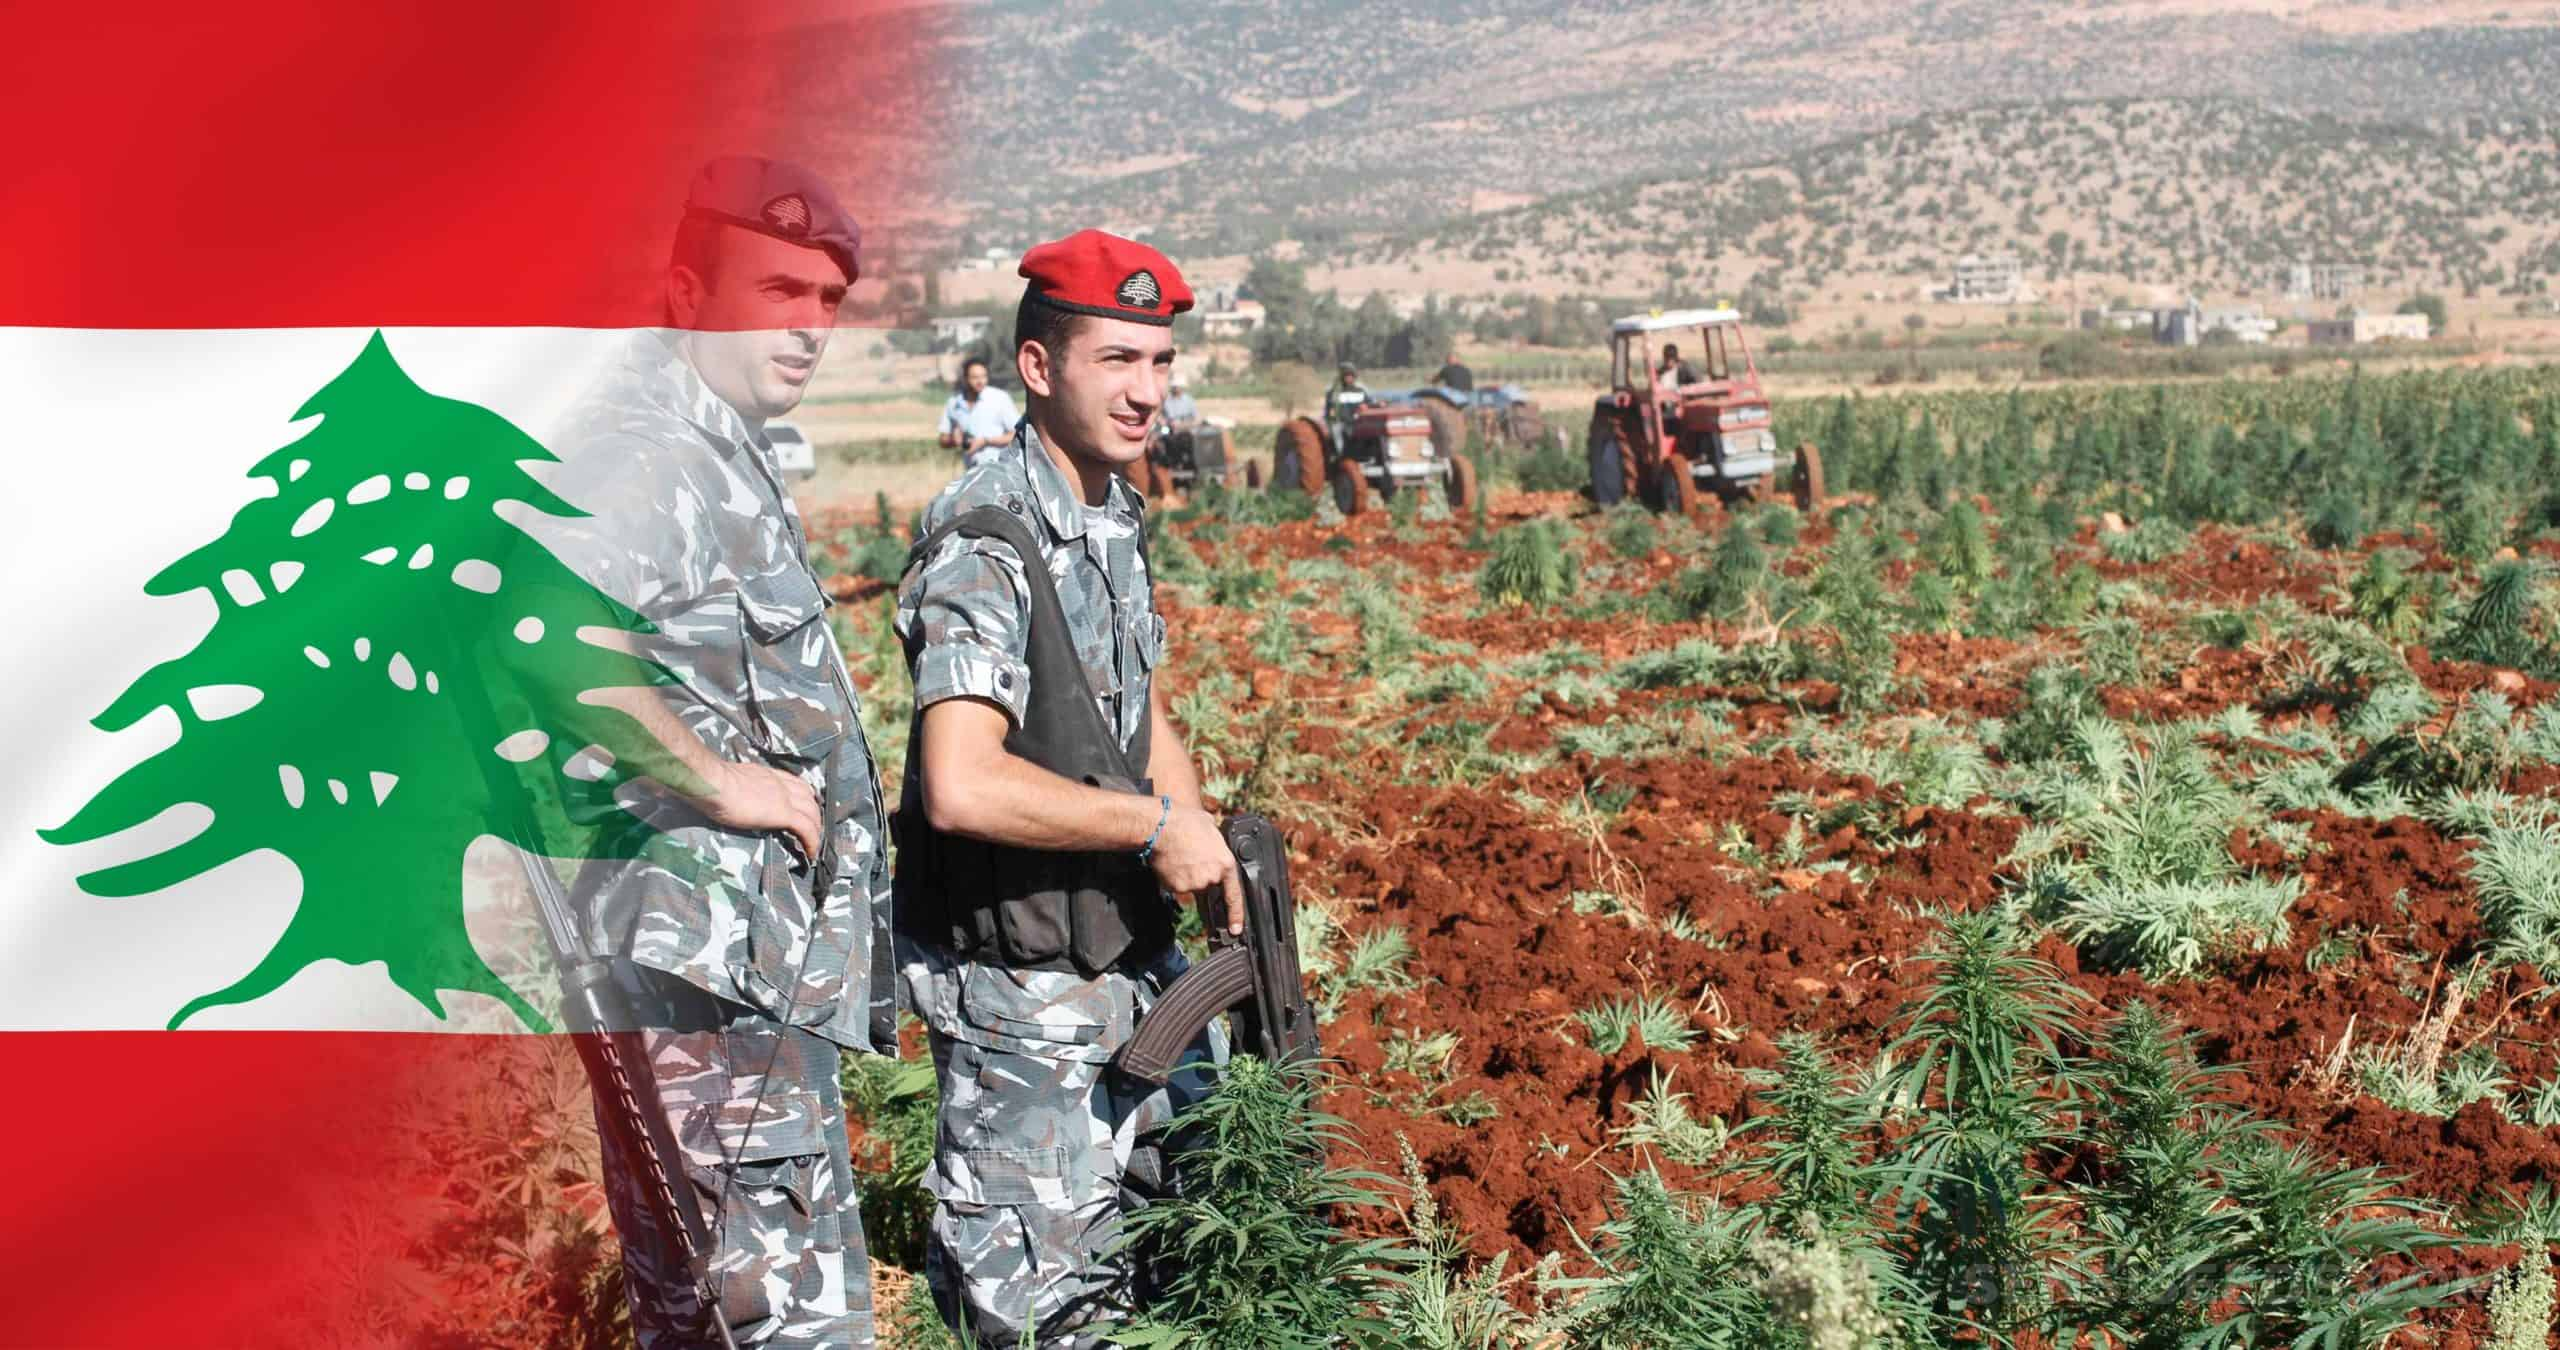 Lebanon Legalizes Medical and Industrial Cannabis Production